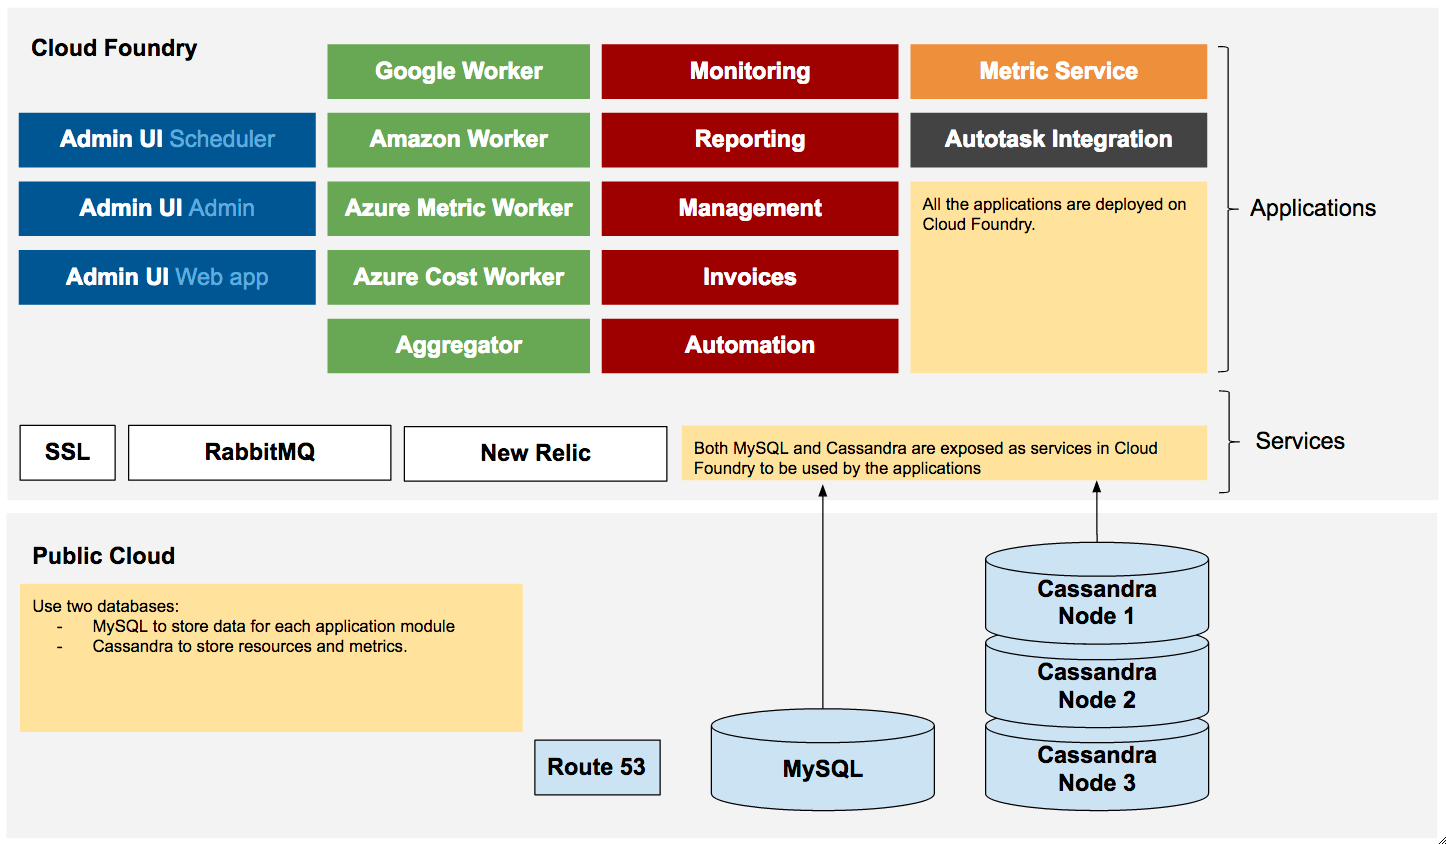 unigma-adopting-ibm-bluemix-and-cloud-foundry-architecture